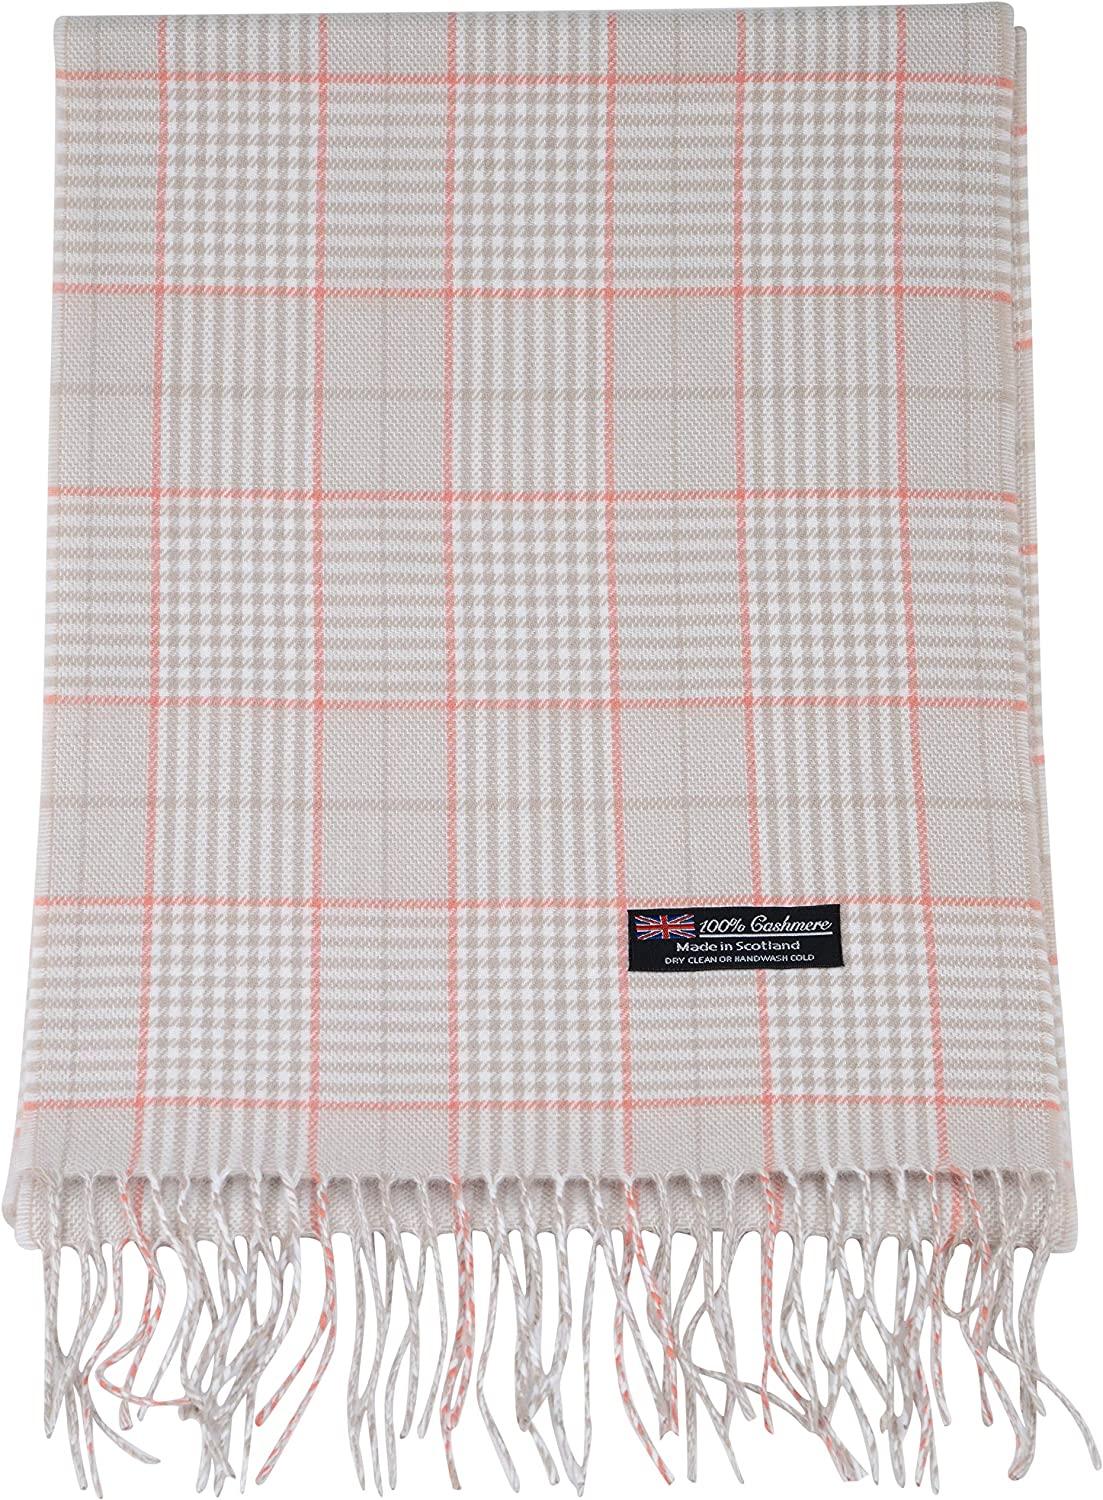 2 PLY 100% Cashmere Scarf Elegant Collection Wo Trust El Paso Mall Made Scotland in